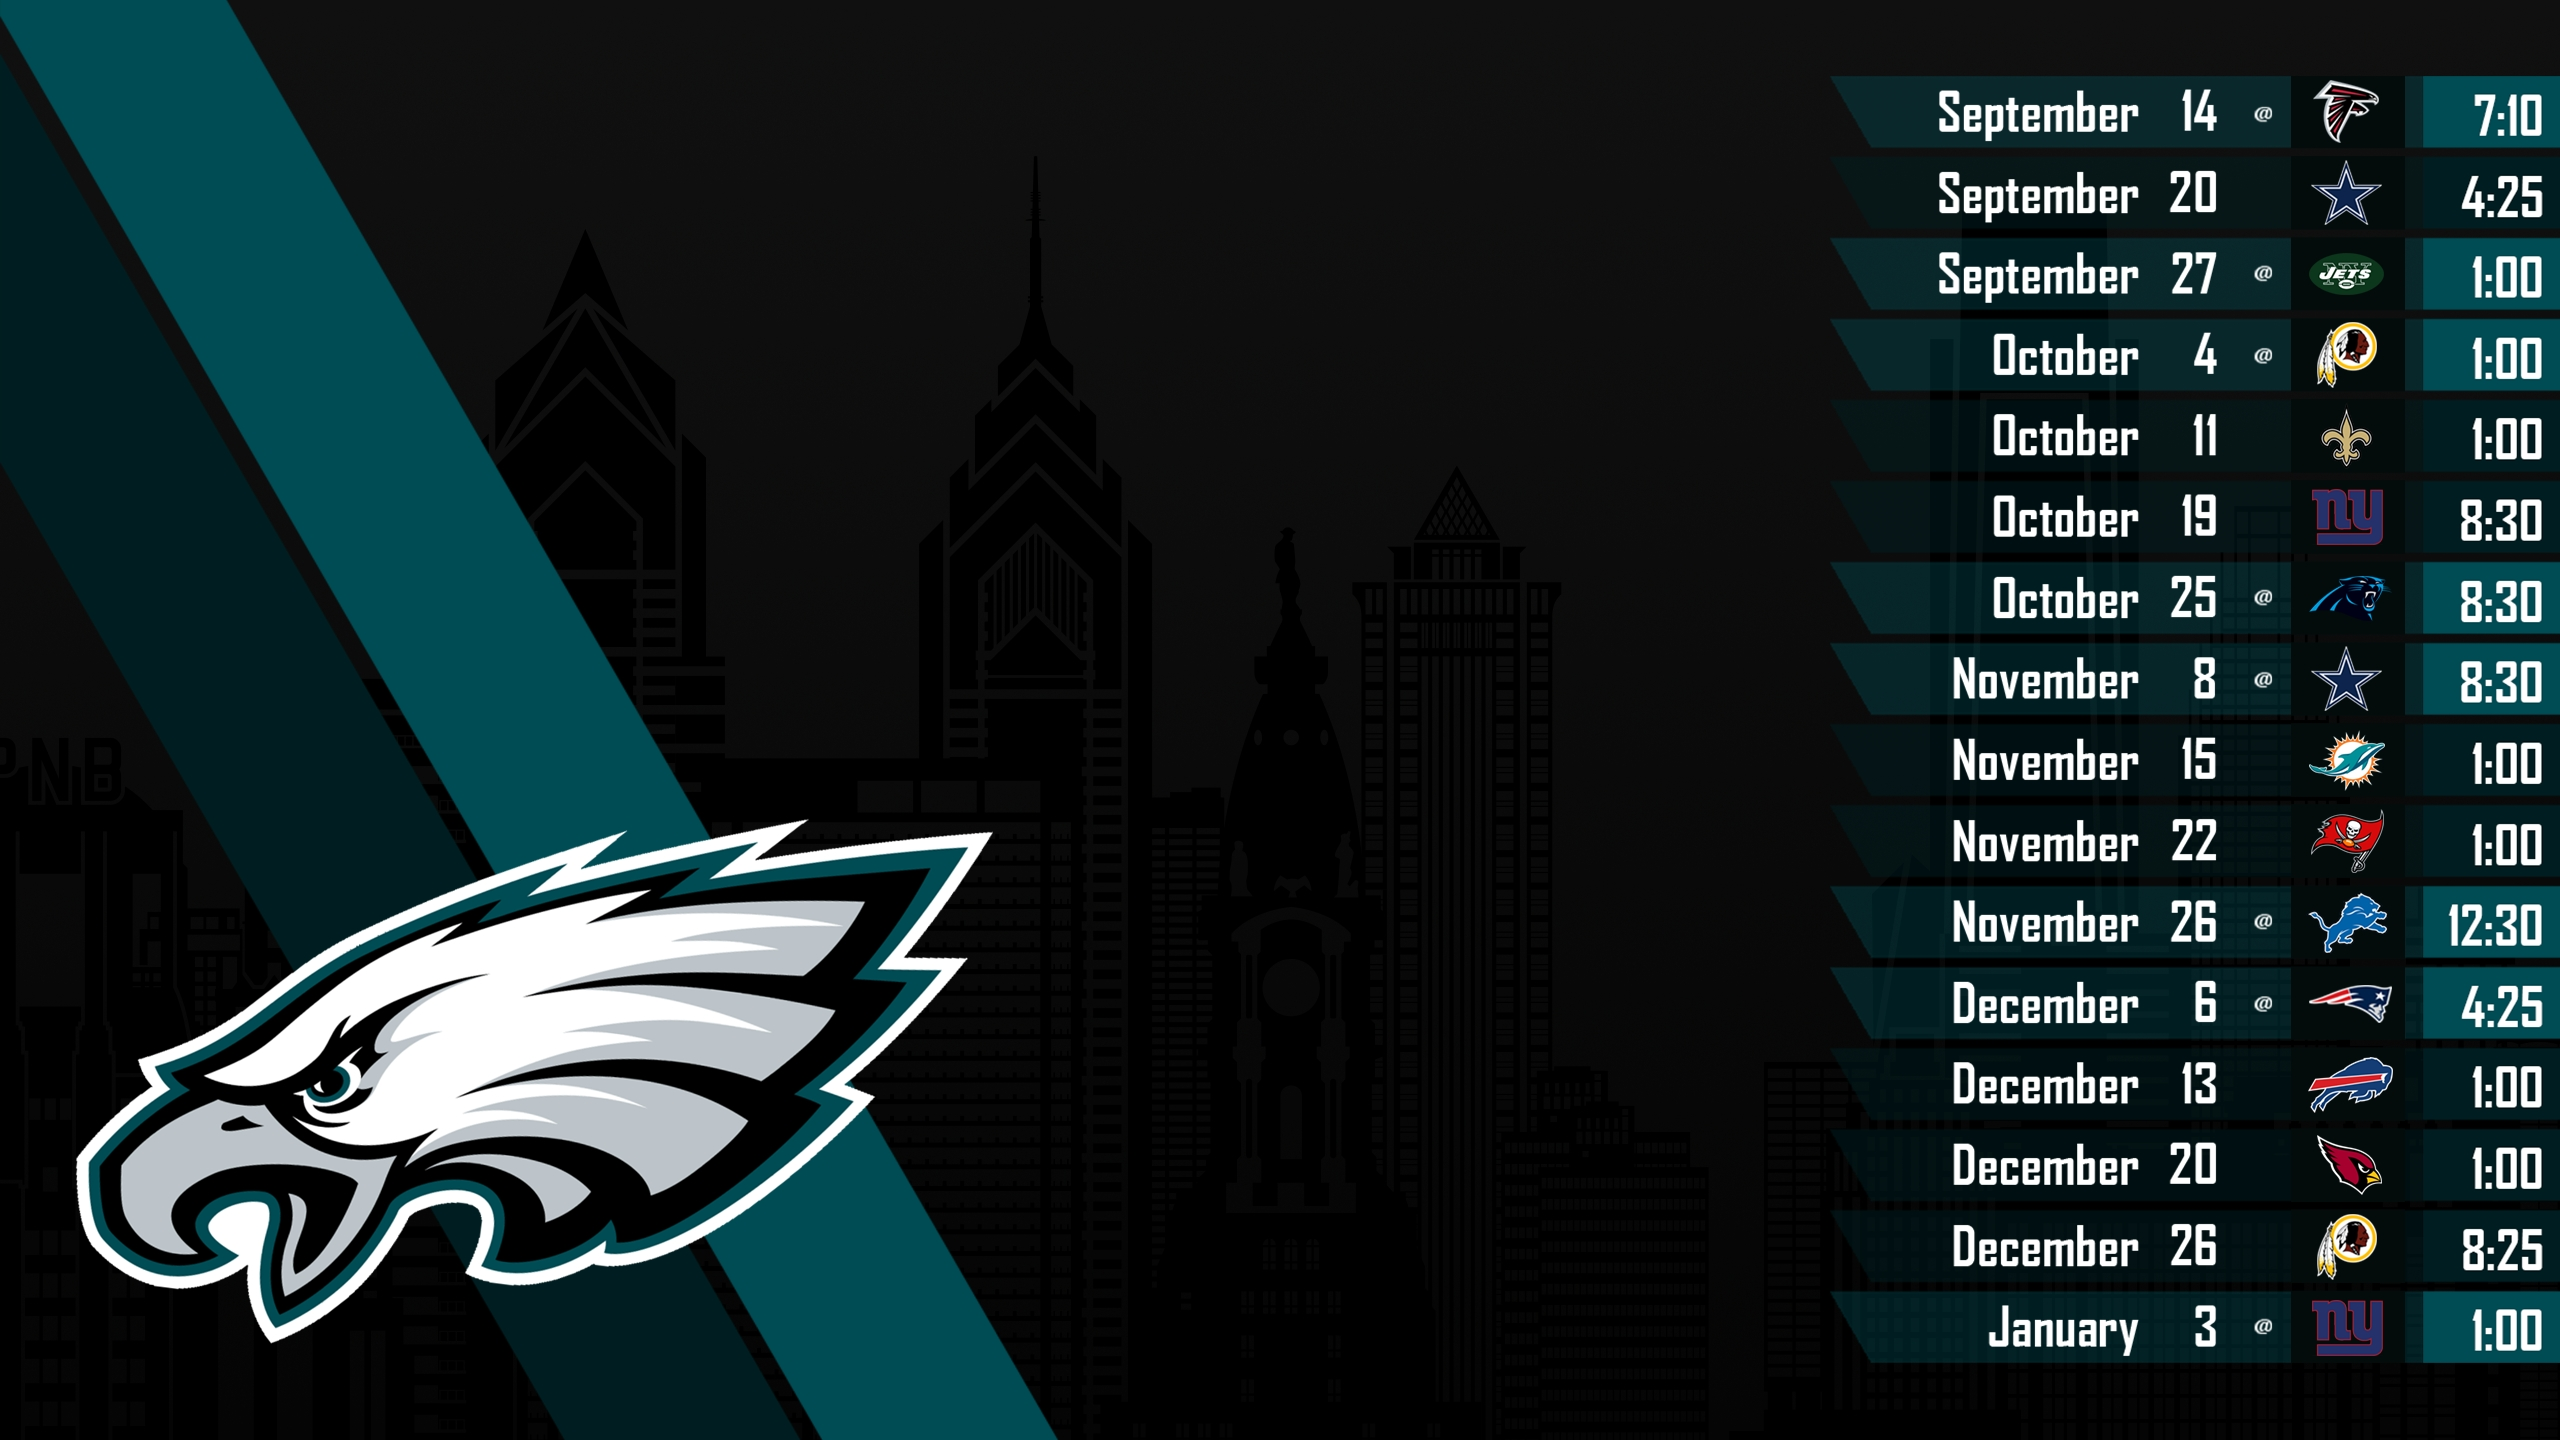 philadelphia eagles jersey schedule 2015